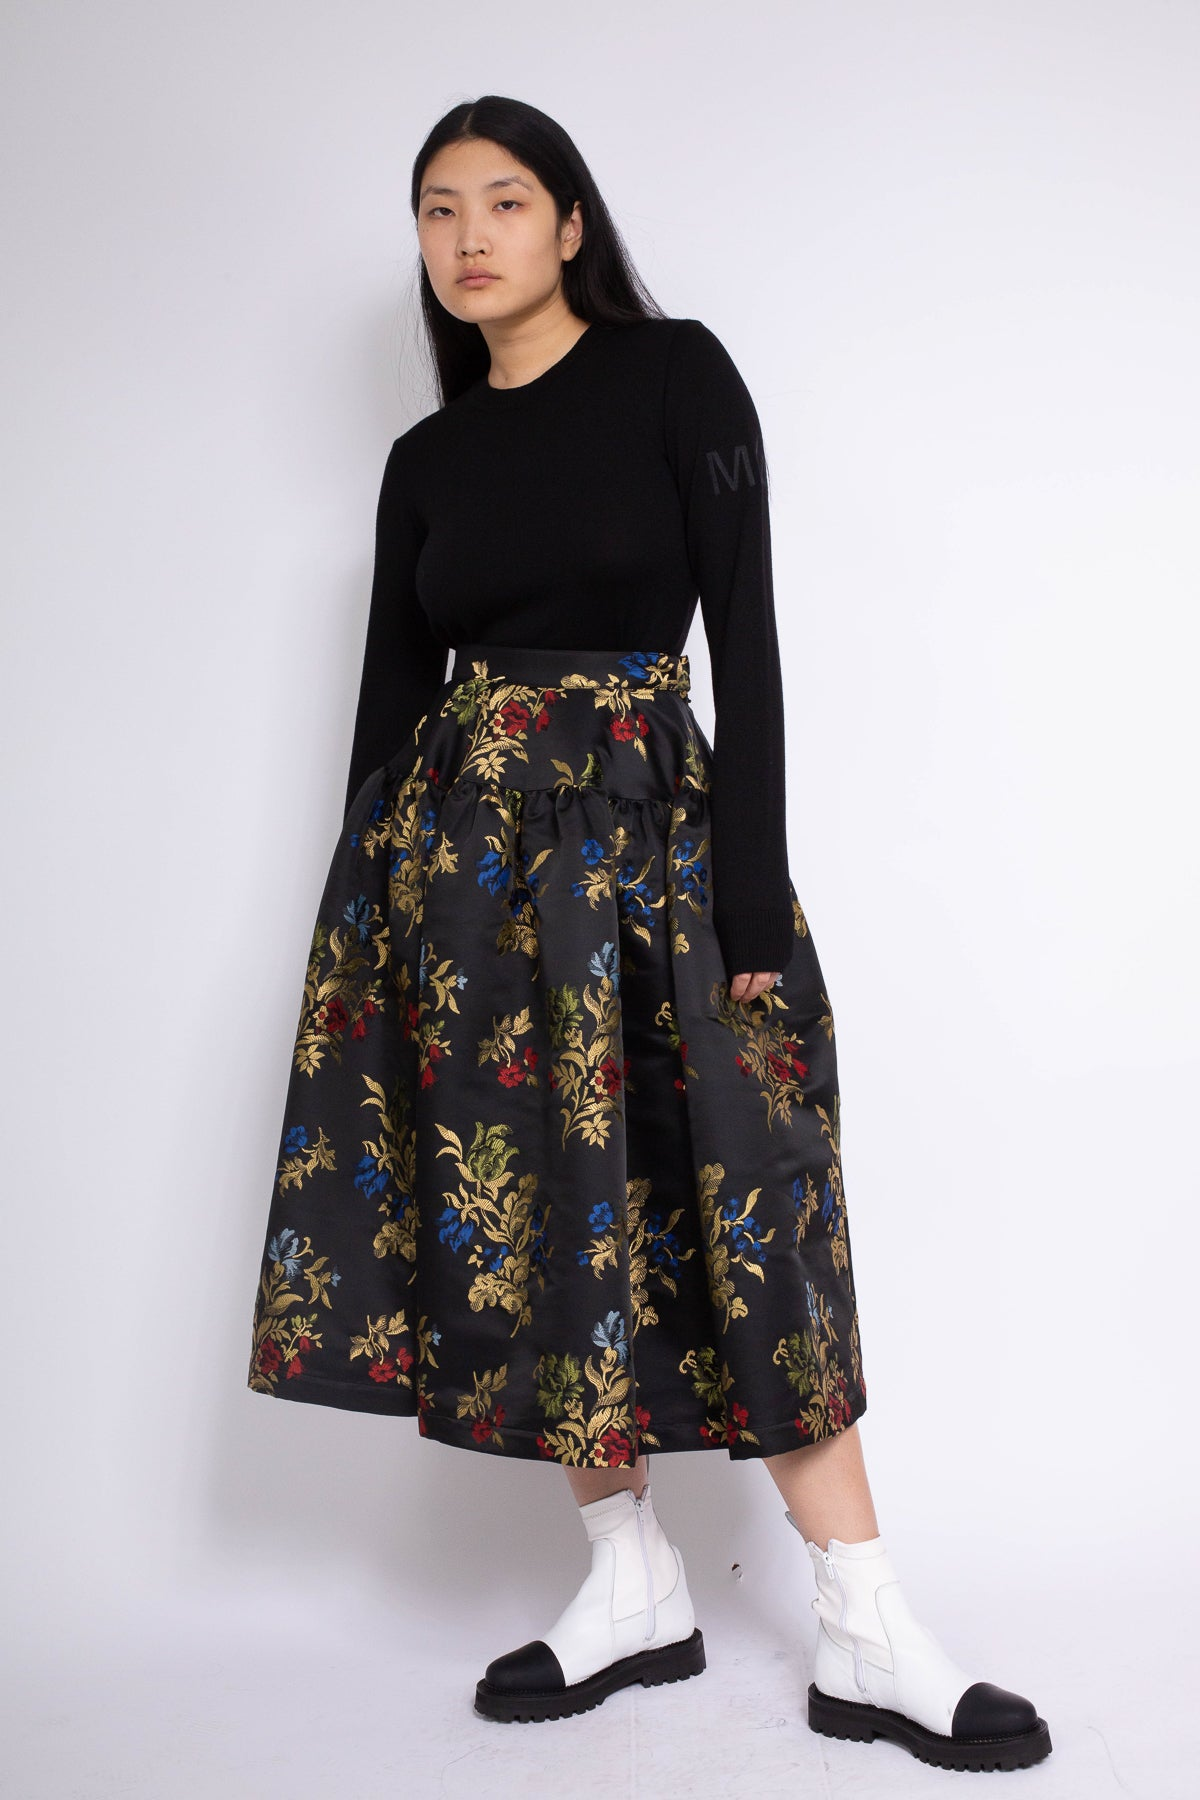 PRE-OWNED / GATHERED YOKE SKIRT IN BLACK FLORAL BROCADE - marques-almeida-dev